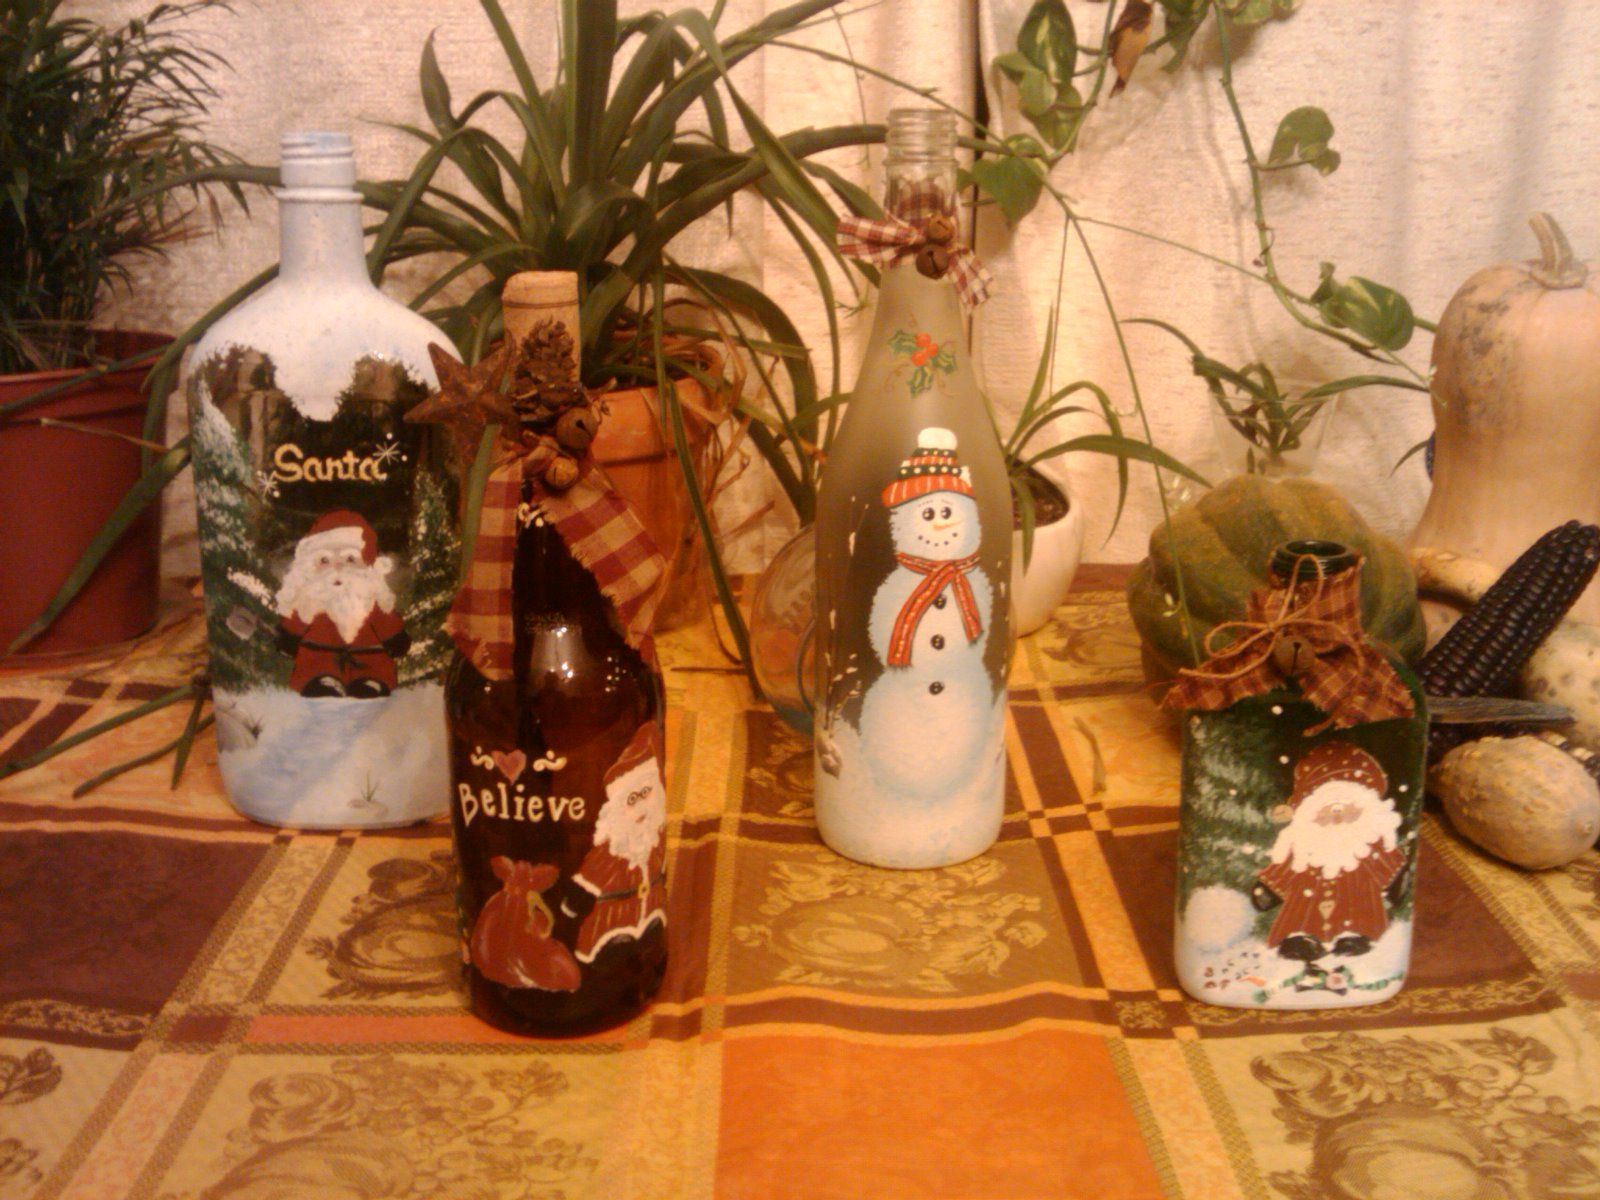 More painted bottles